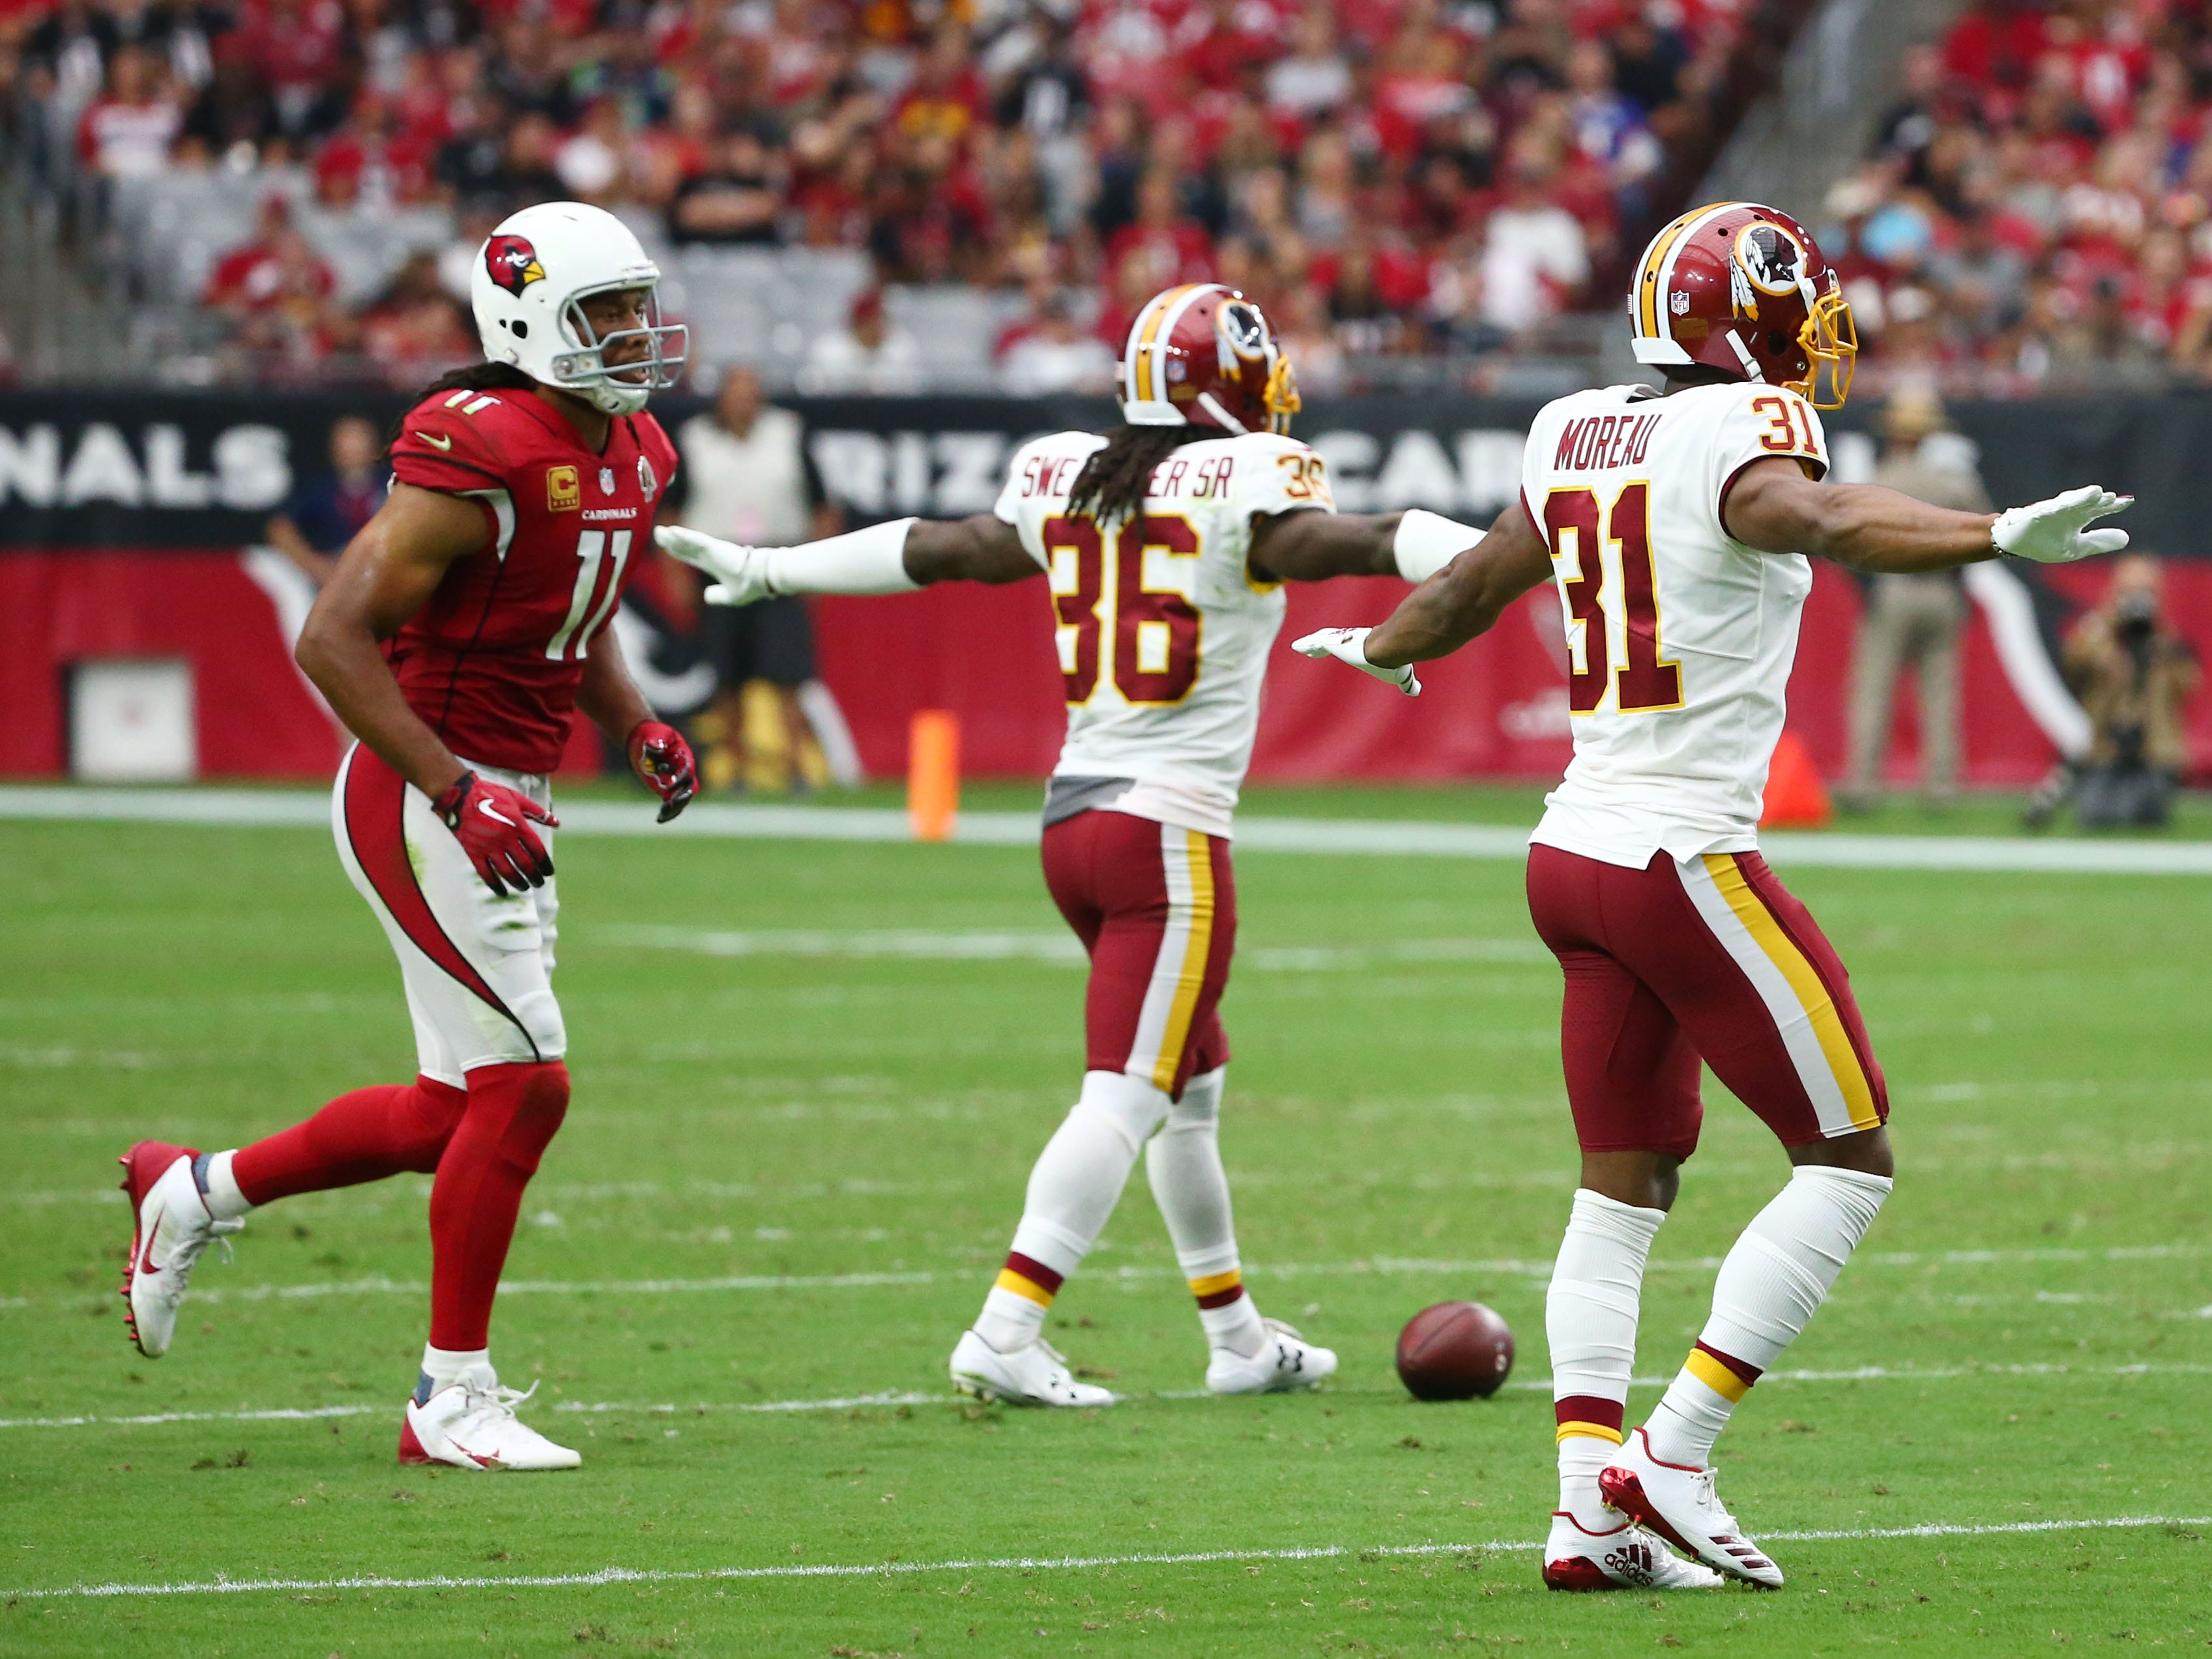 Arizona Cardinals wide receiver Larry Fitzgerald reacts after the Washington Redskins broke up a pass at State Farm Stadium.